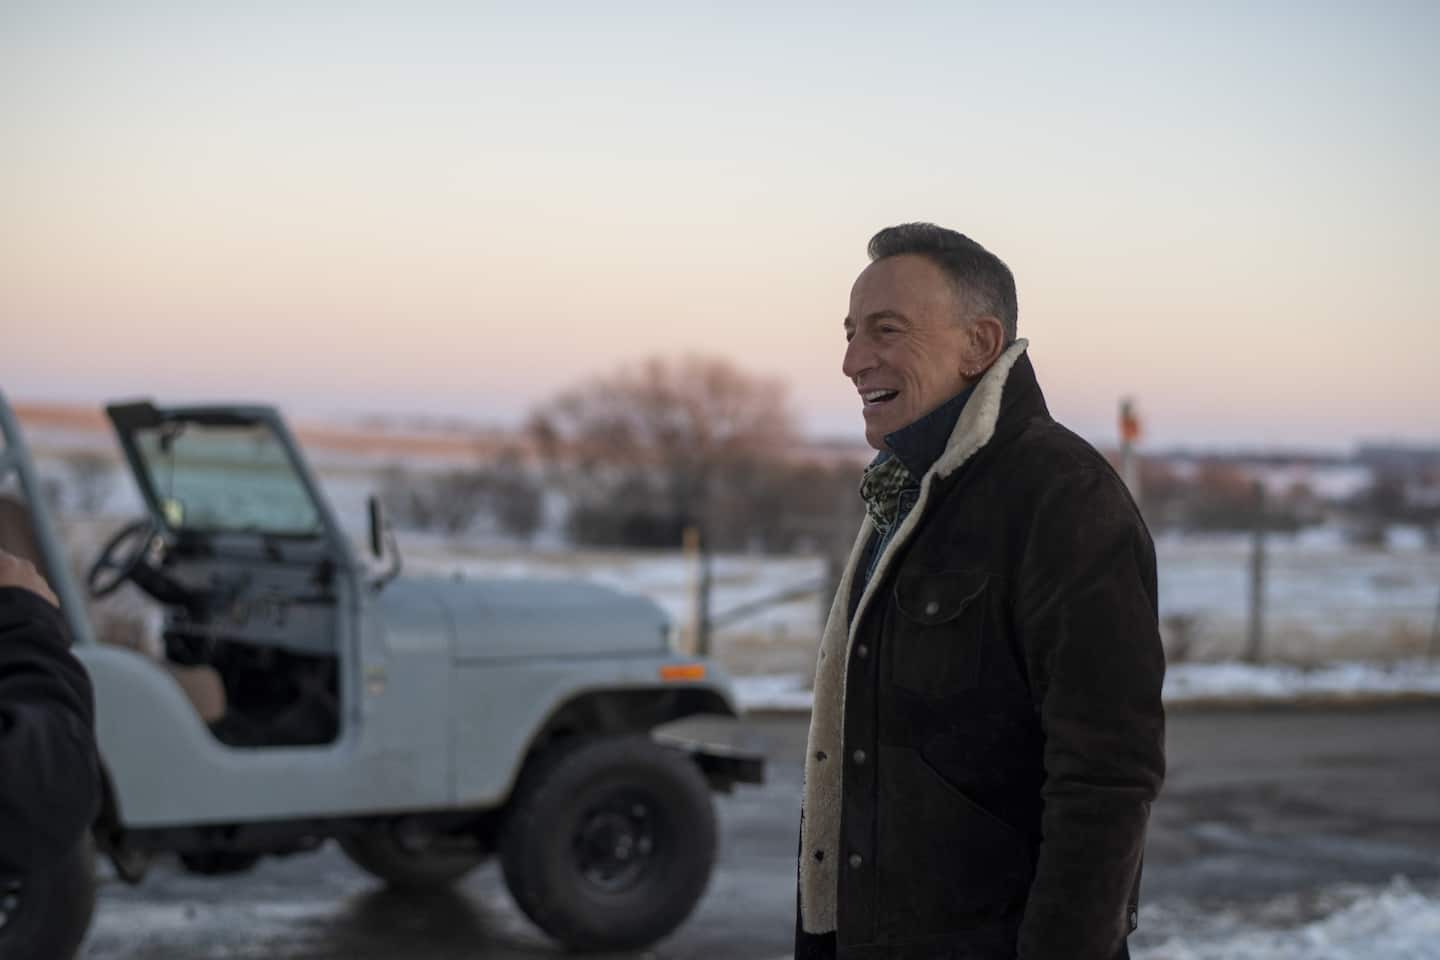 If Bruce Springsteen's Jeep commercial doesn't bum you out, congrats on the purchase of your new Jeep